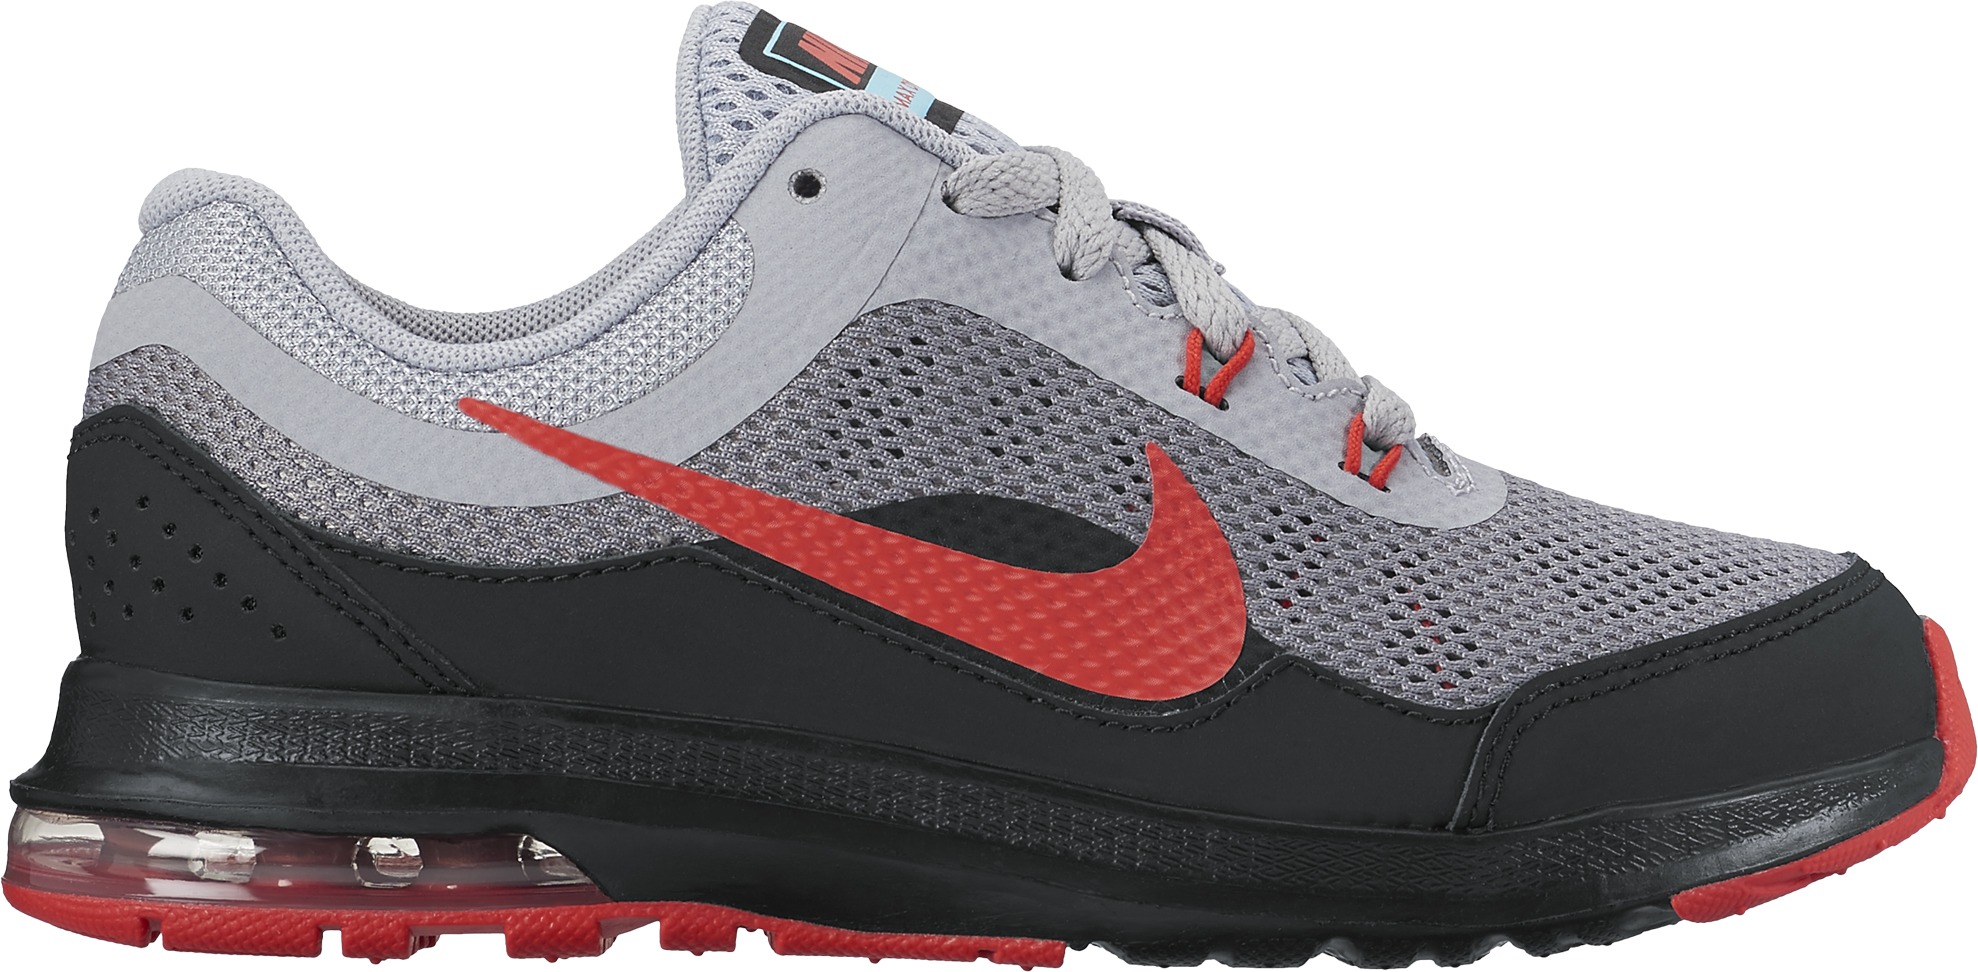 Nike Boy's Nike Air Max Dynasty 2 (PS) Shoes Wolf Grey Max Orange-Black-White 12.5C by Nike